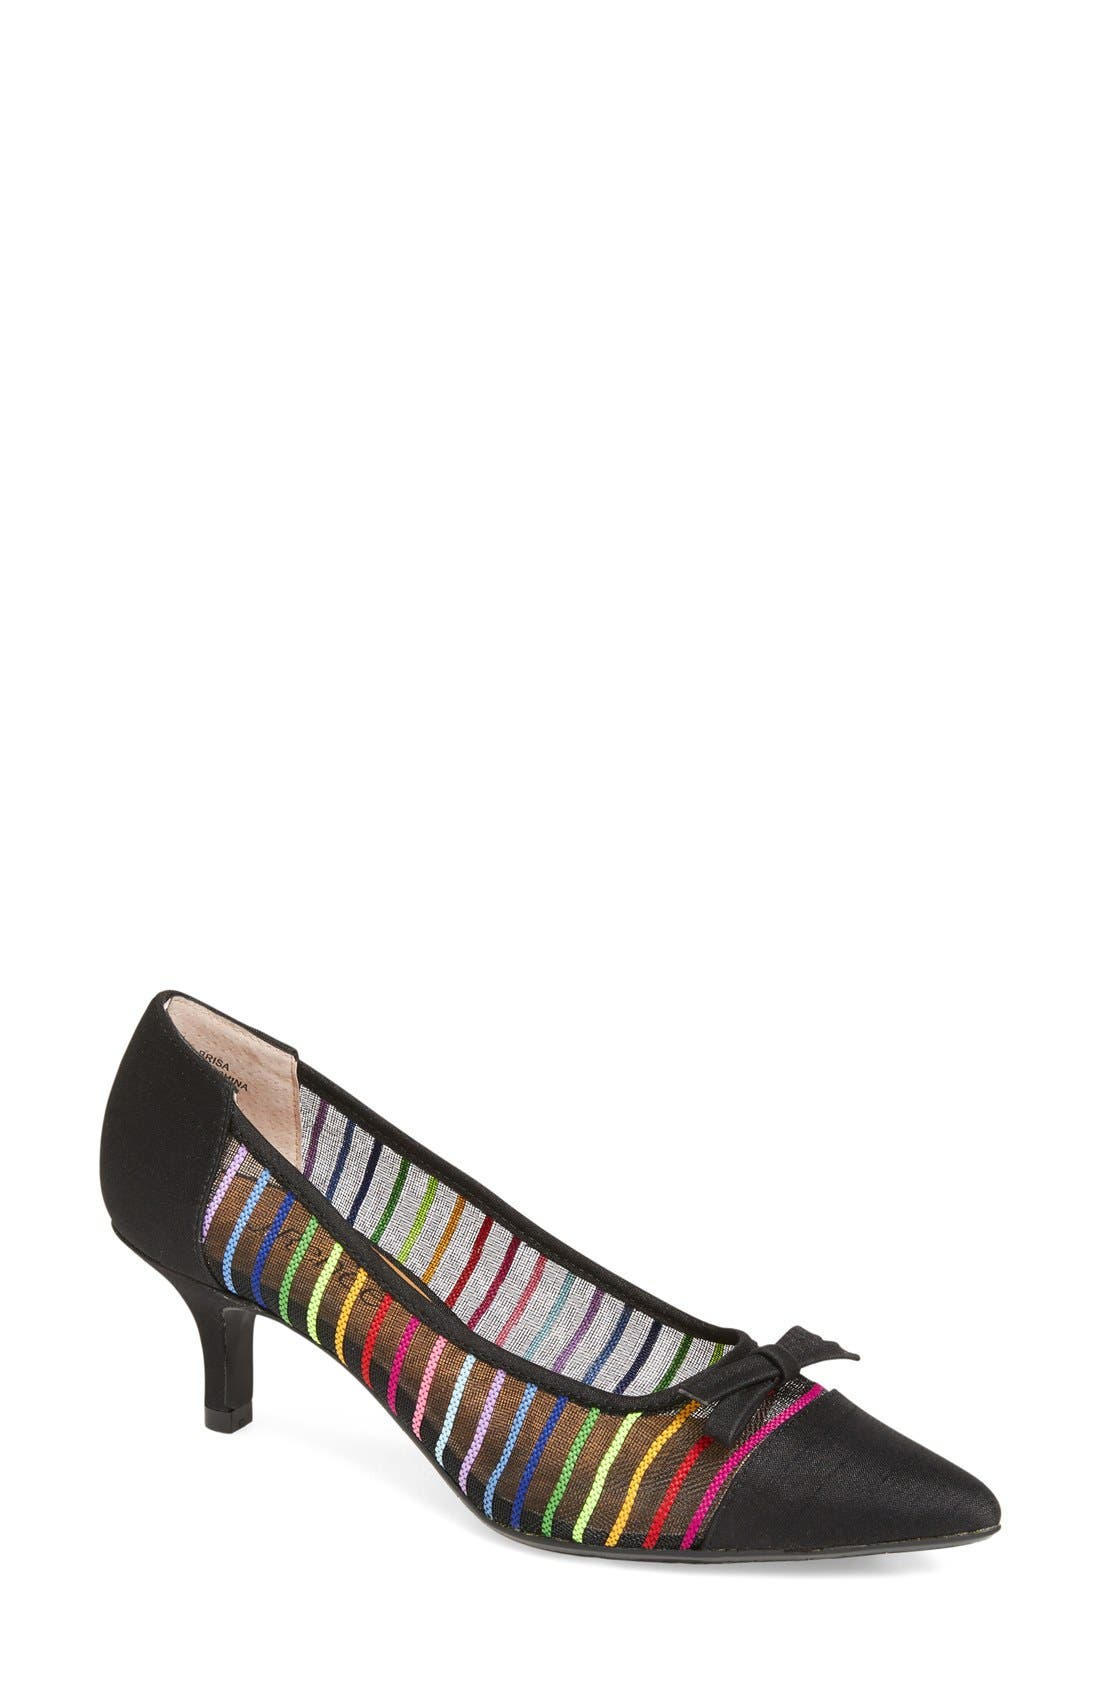 J. Reneé Brisa Pointy Toe Rainbow Stripe Pump (Women)